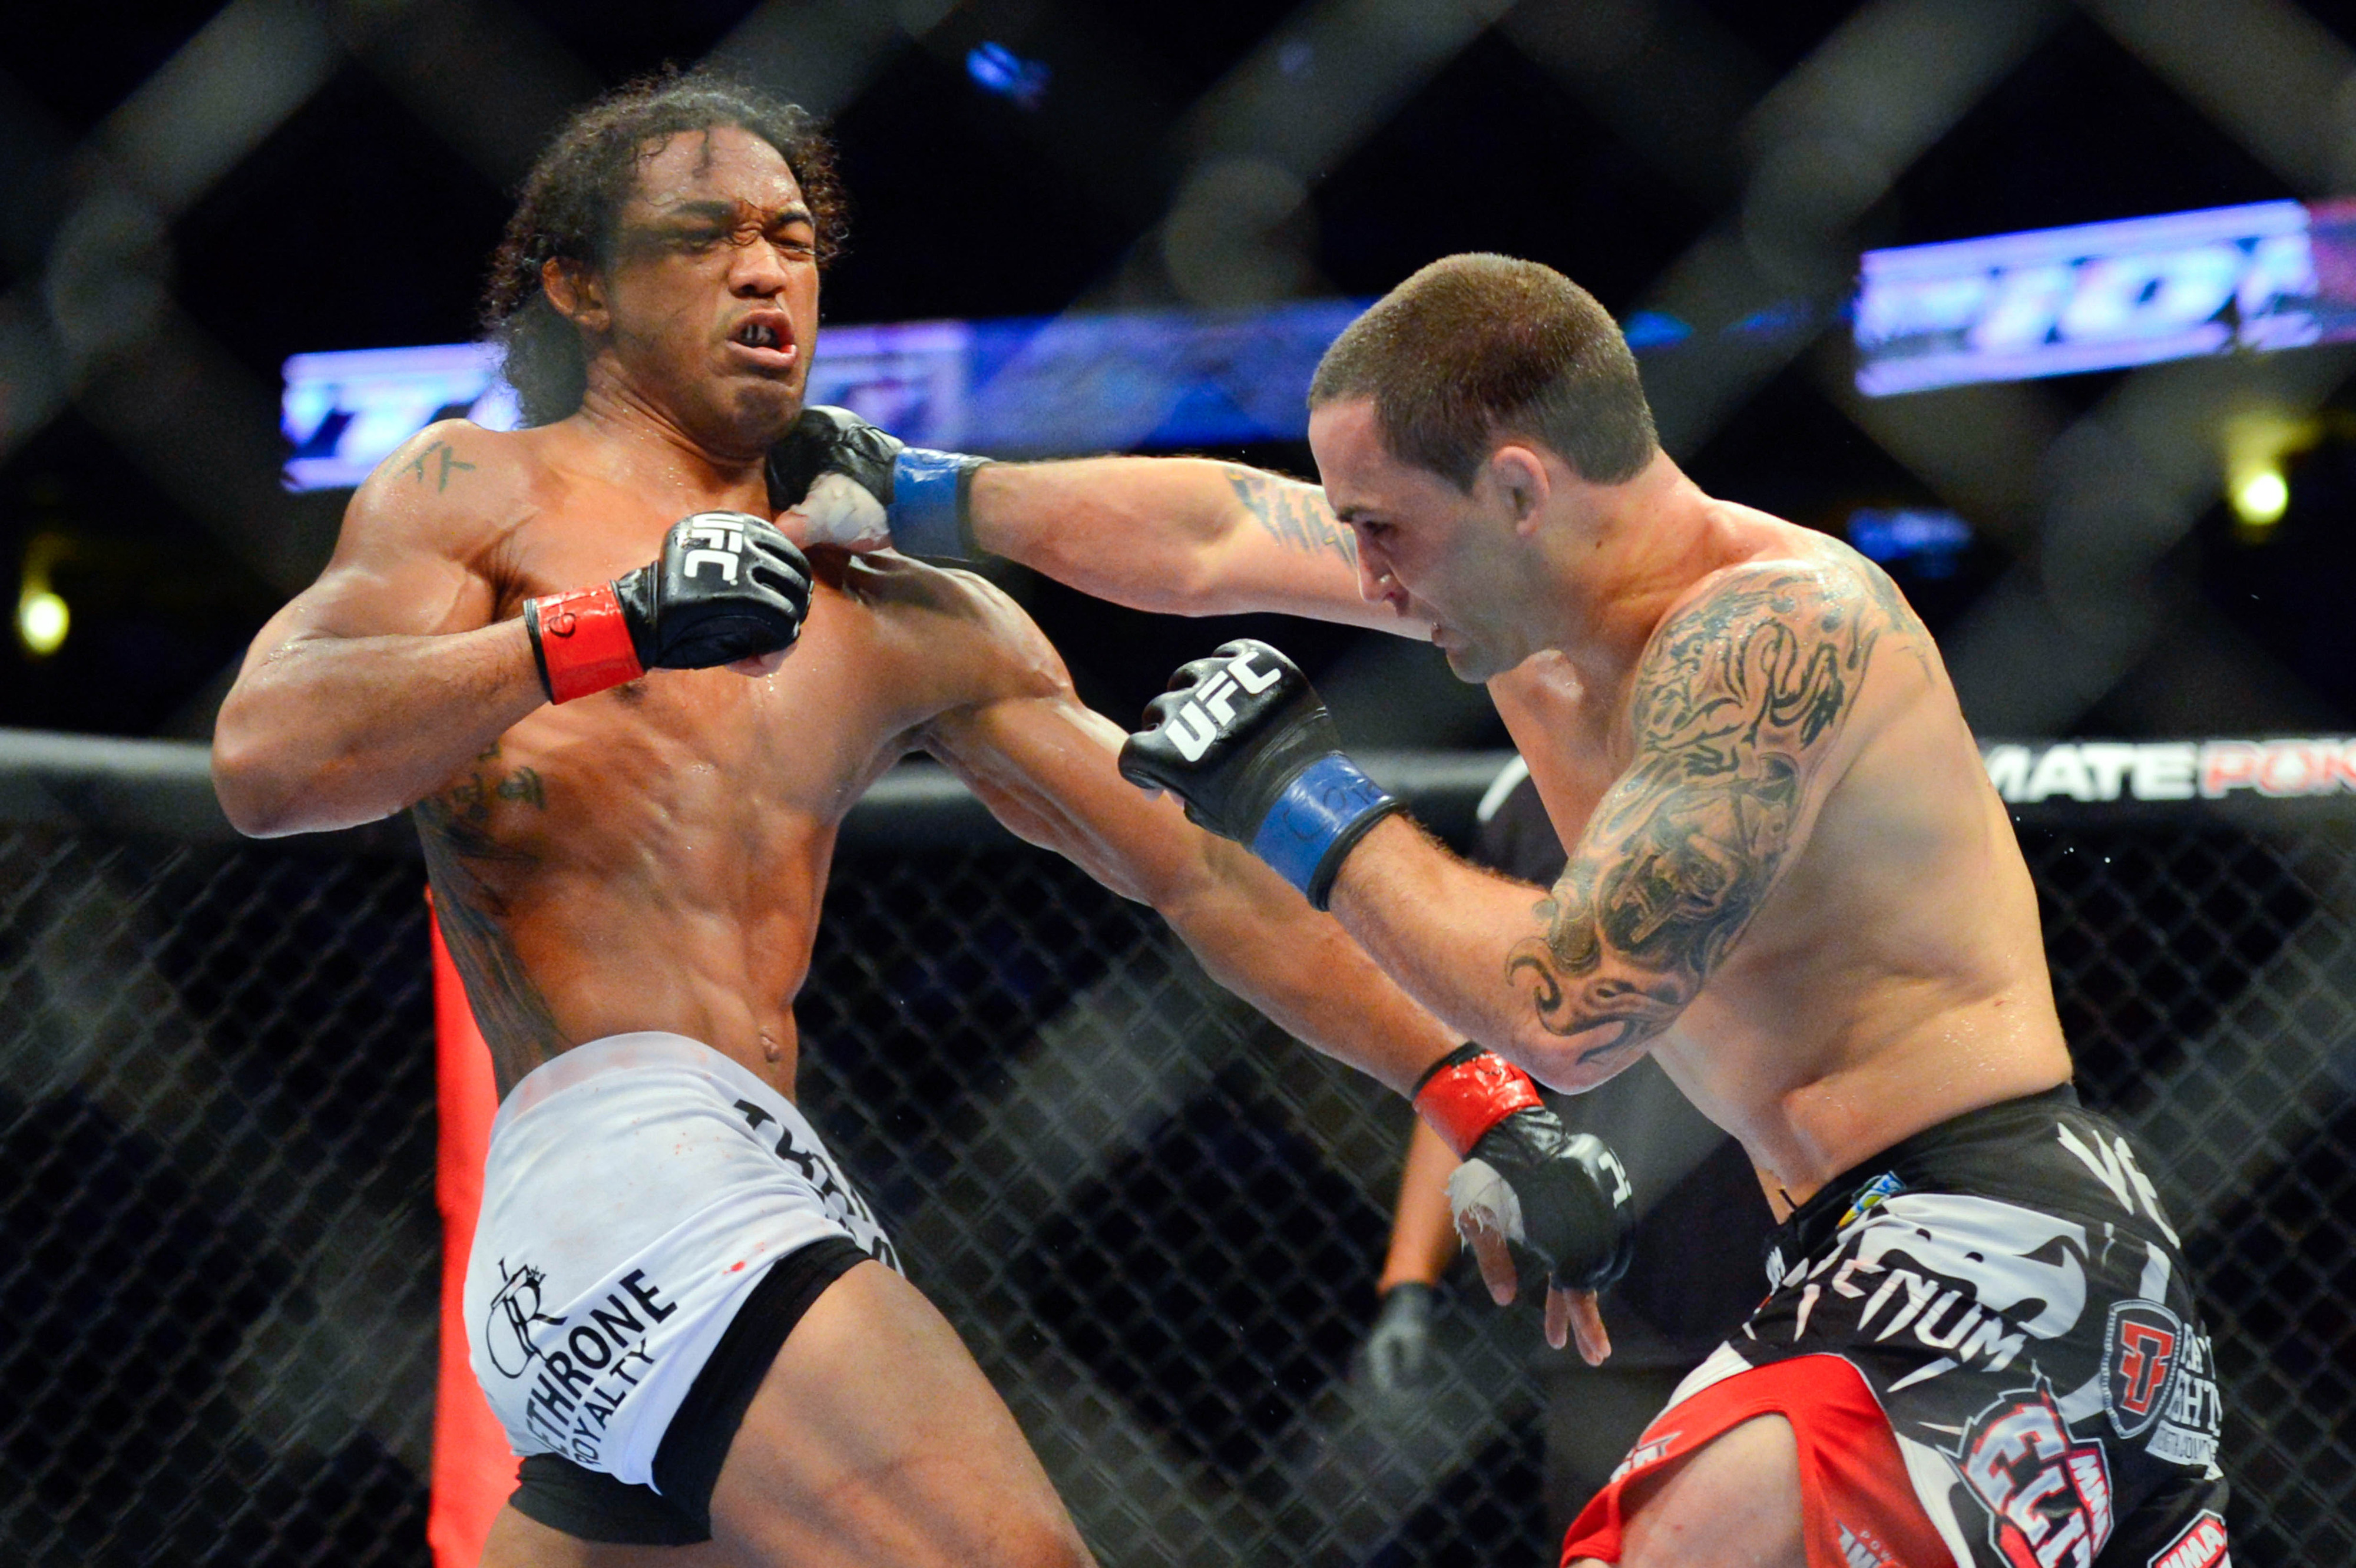 August 11, 2012; Denver, CO, USA; Benson Henderson (left) fights Frankie Edgar (right) during UFC 150 at the Pepsi Center. Ron Chenoy-US PRESSWIRE